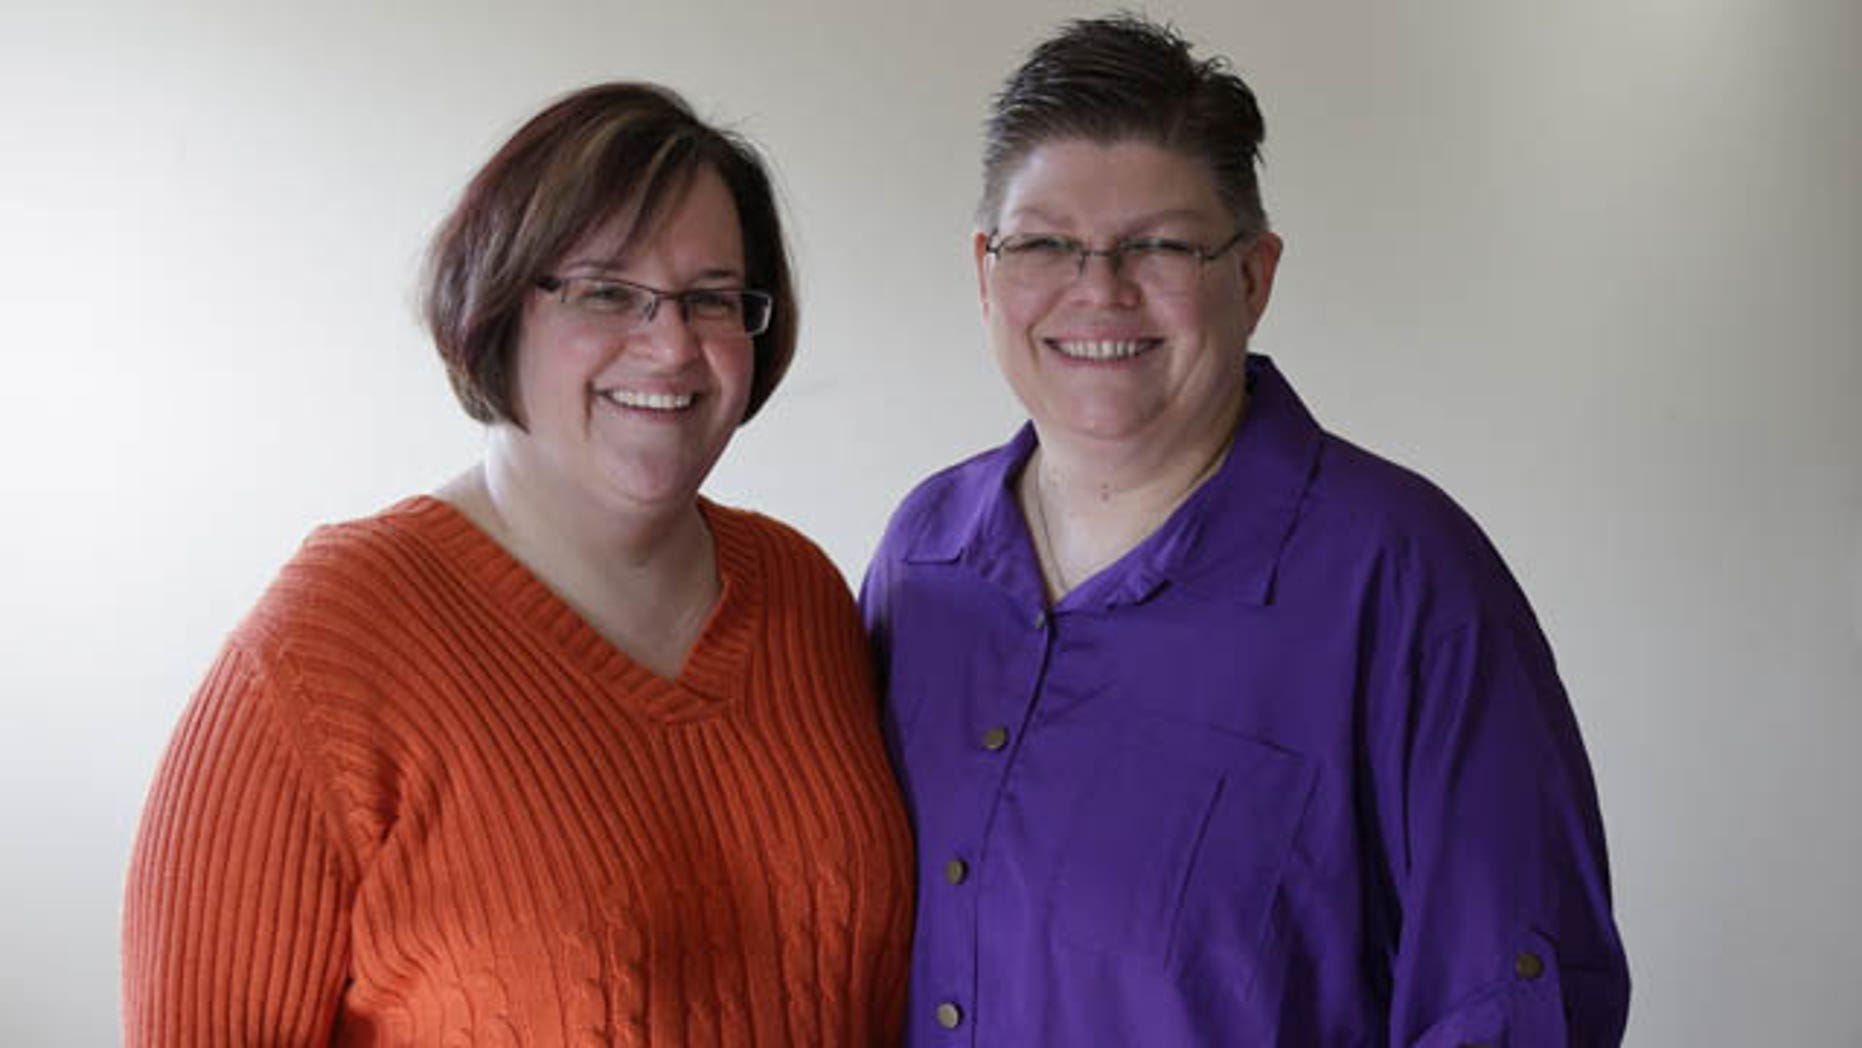 FILE - In this March 5, 2013 file photo, April DeBoer, left, and Jayne Rowse, and pose at their home in Hazel Park, Mich. (AP Photo)